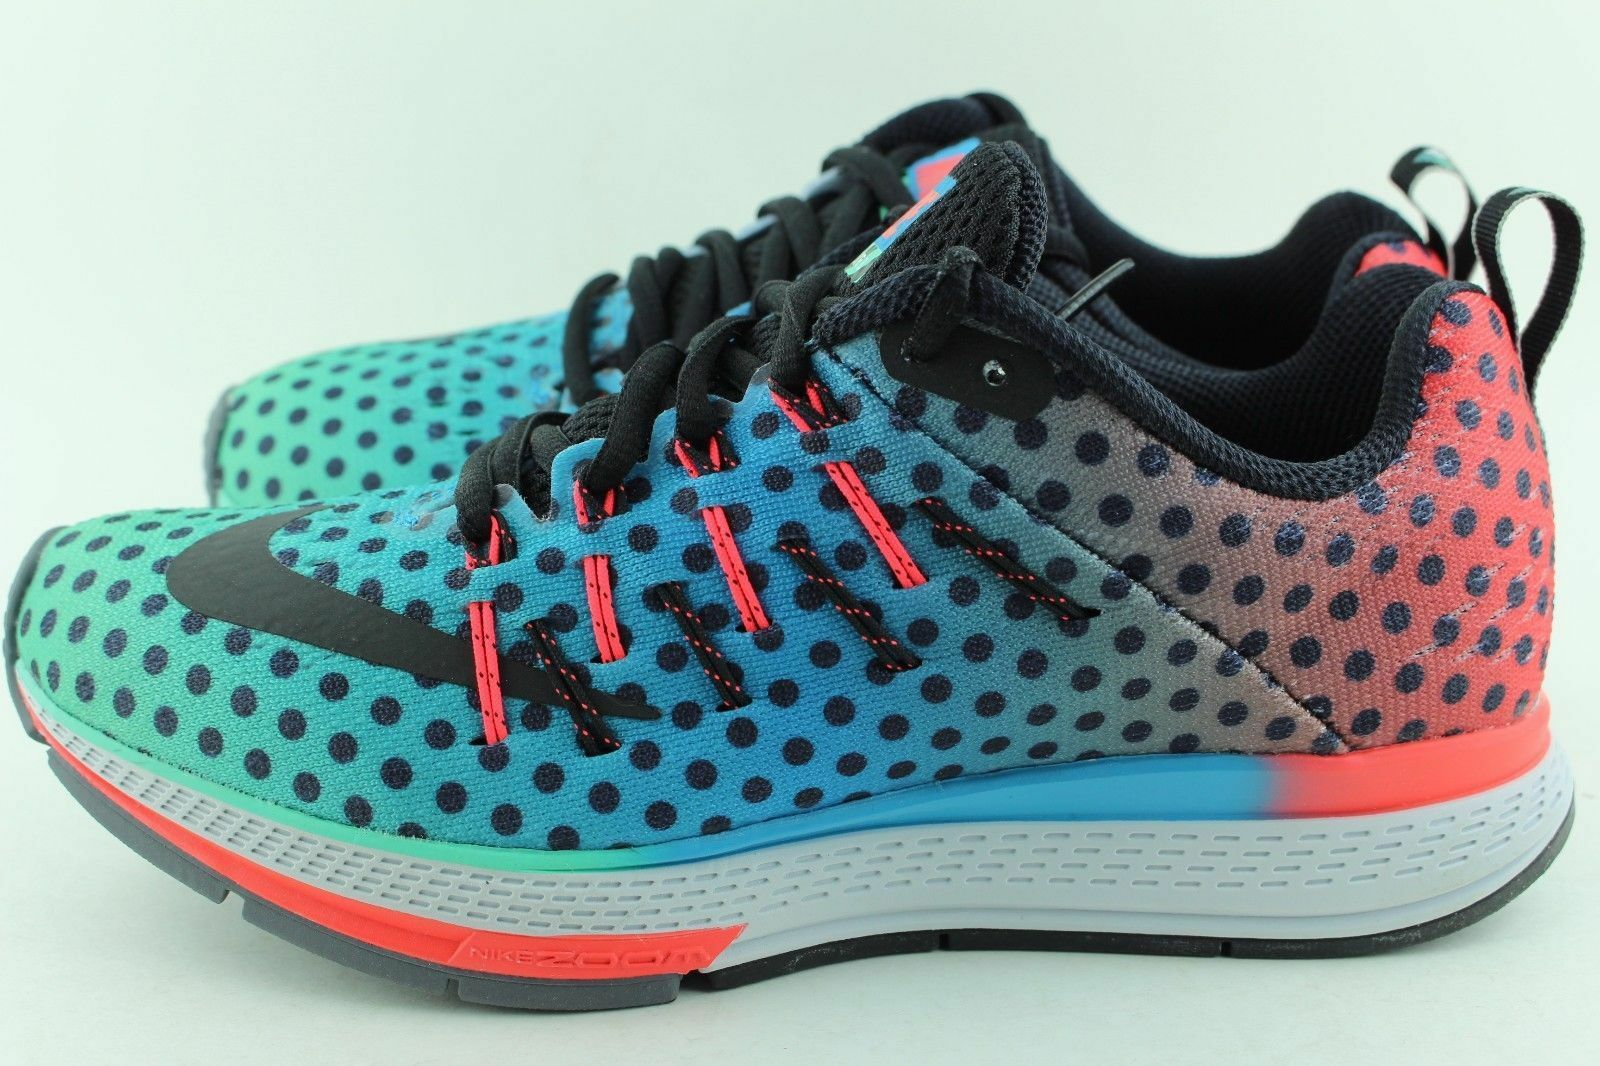 NIKE WOMAN AIR ZOOM ELITE 8 101 LACTIC ACID PACK SIZE 6.0 NEW RUNNING RARE